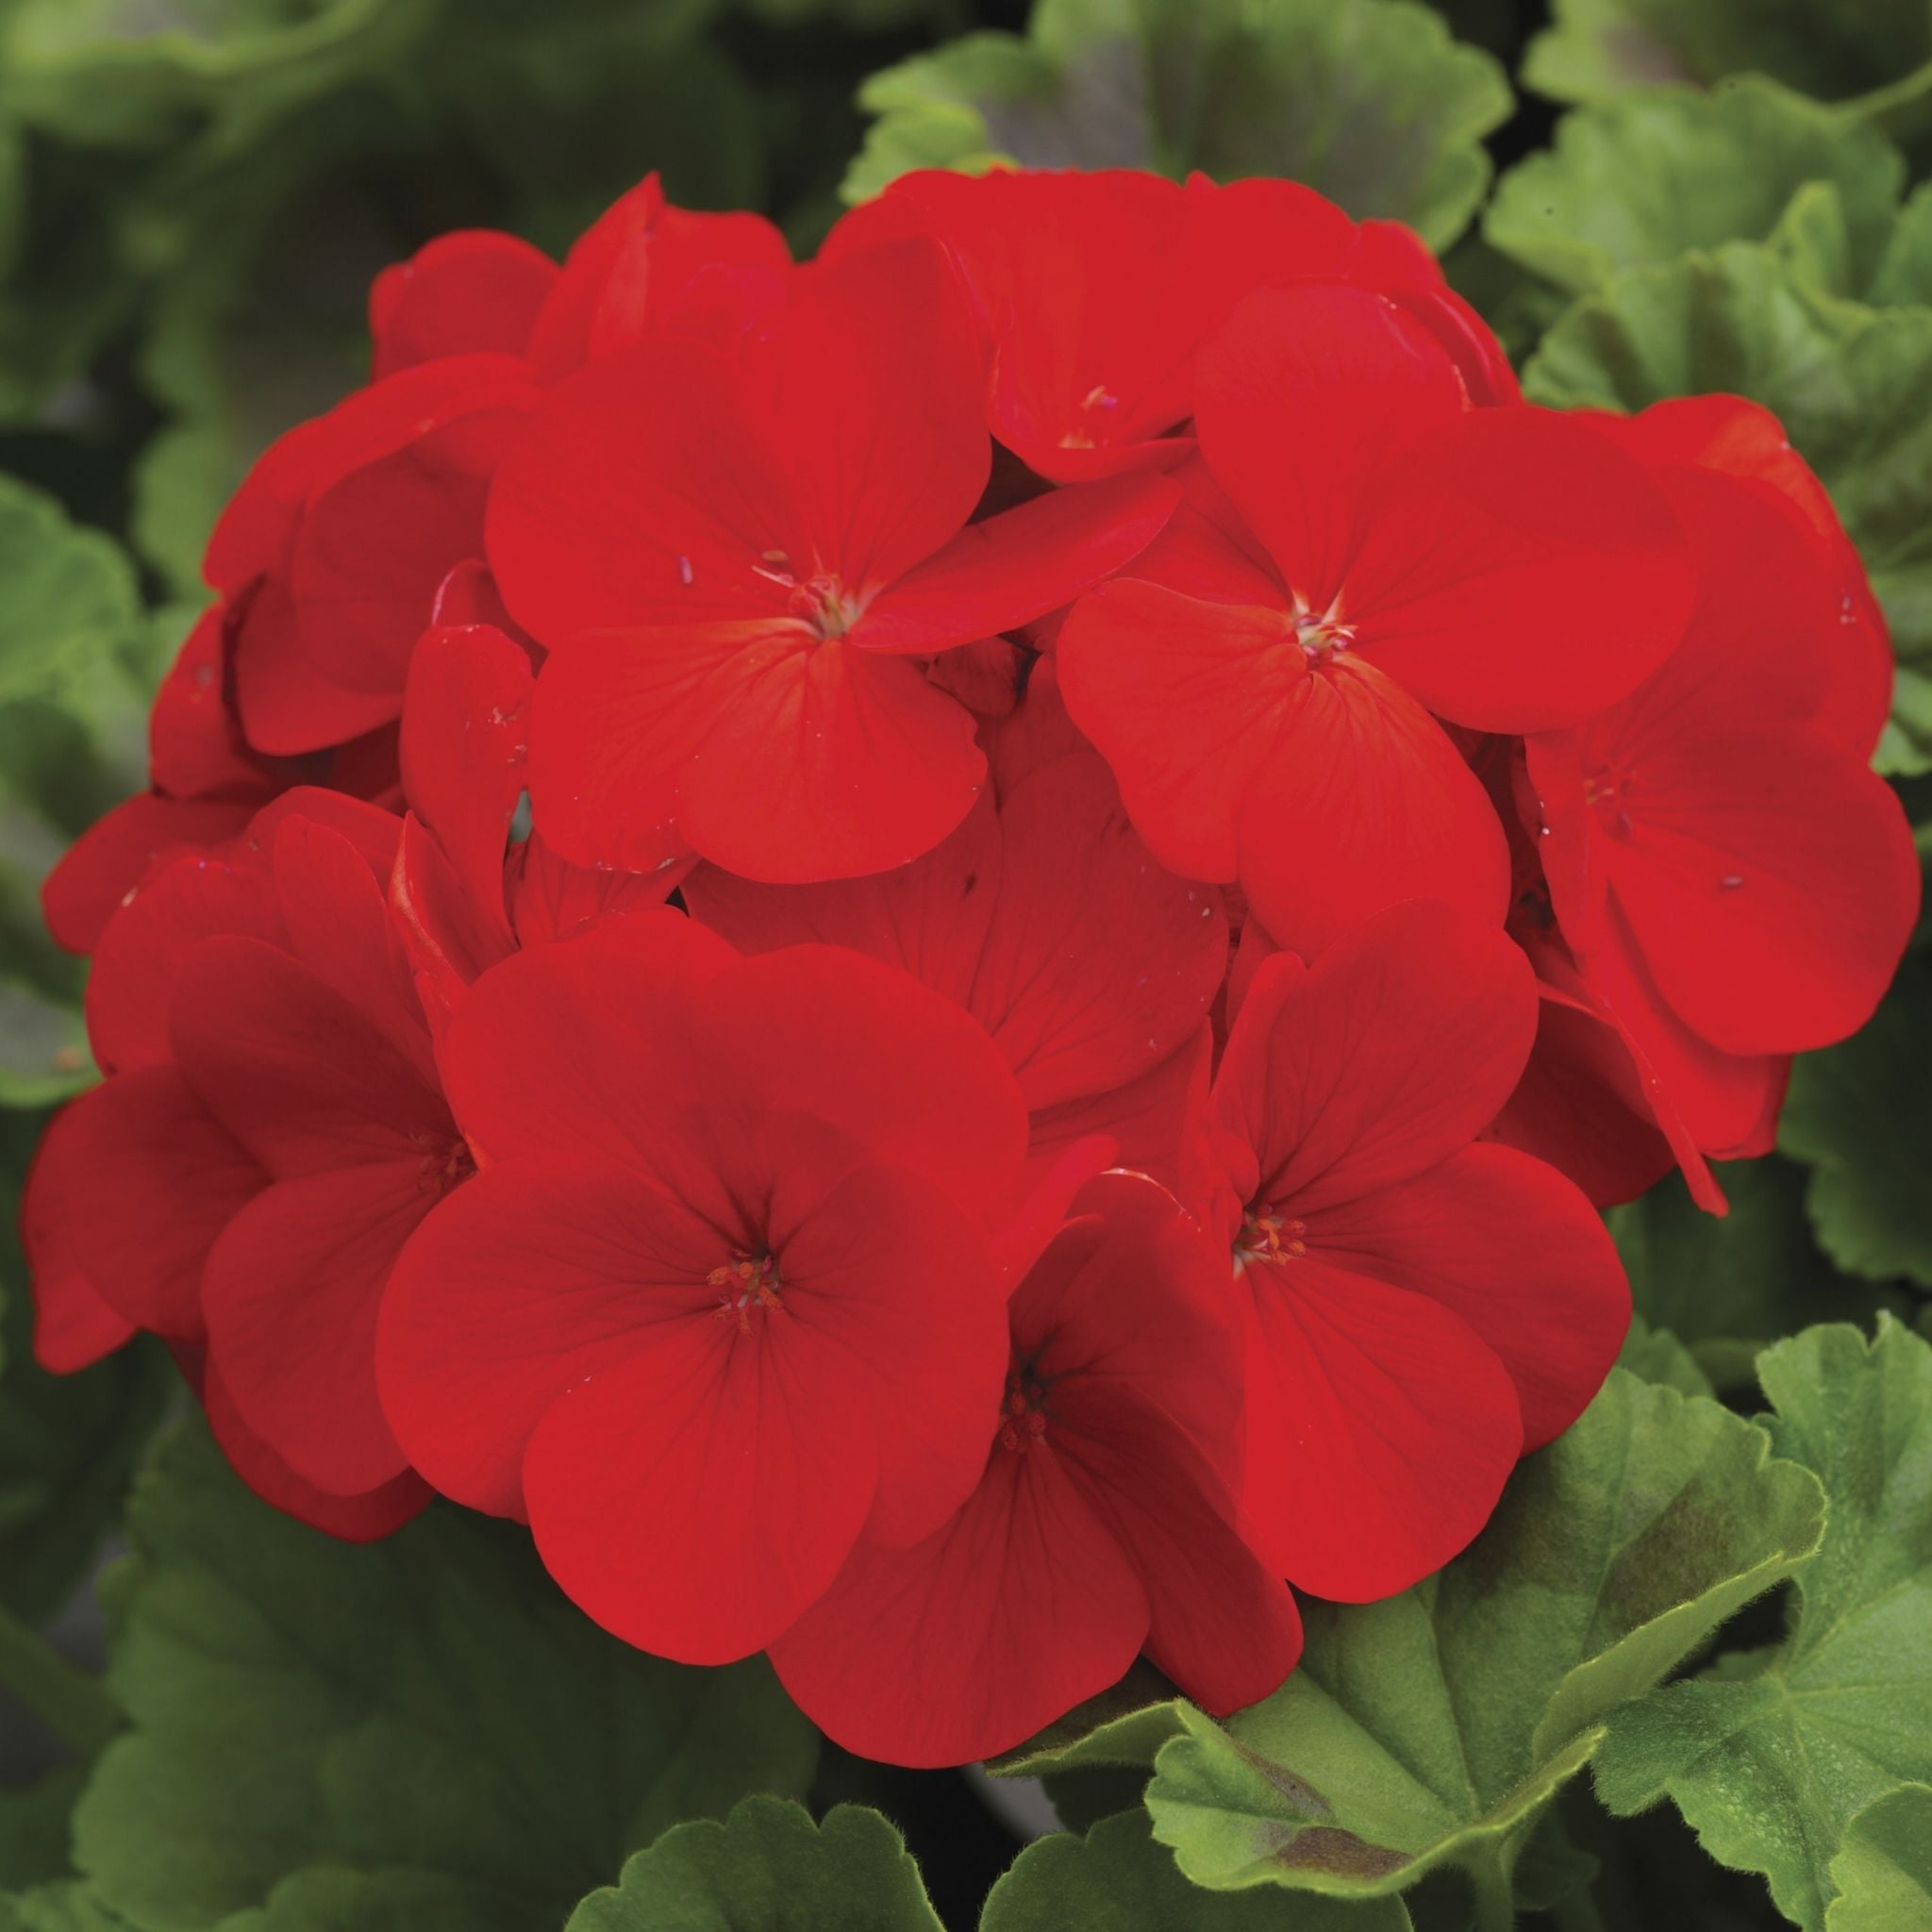 Geranium Flats for sale kollmans greenhouse twinsburg oh